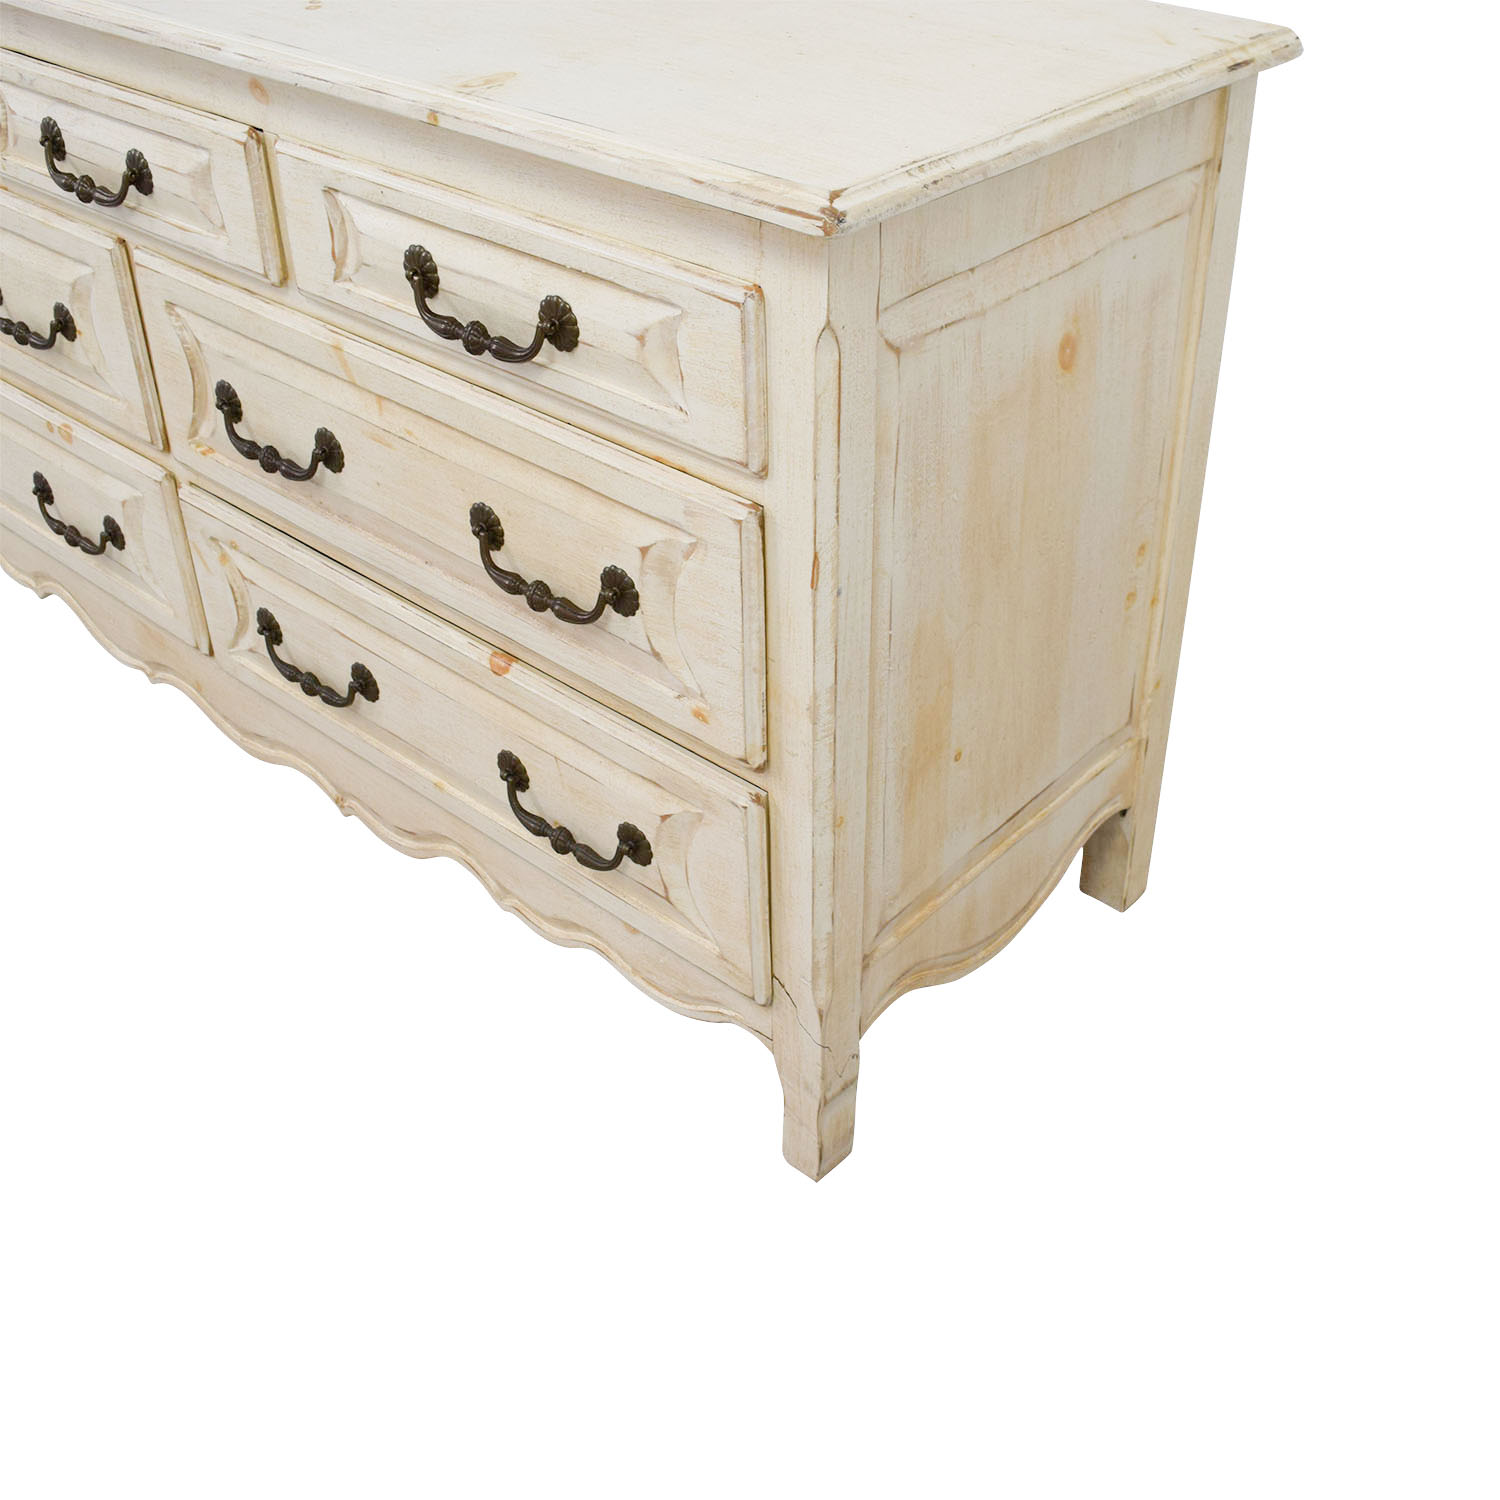 Habersham Plantation Habersham Plantation Distressed Seven-Drawer Distressed Cream Double Dresser price